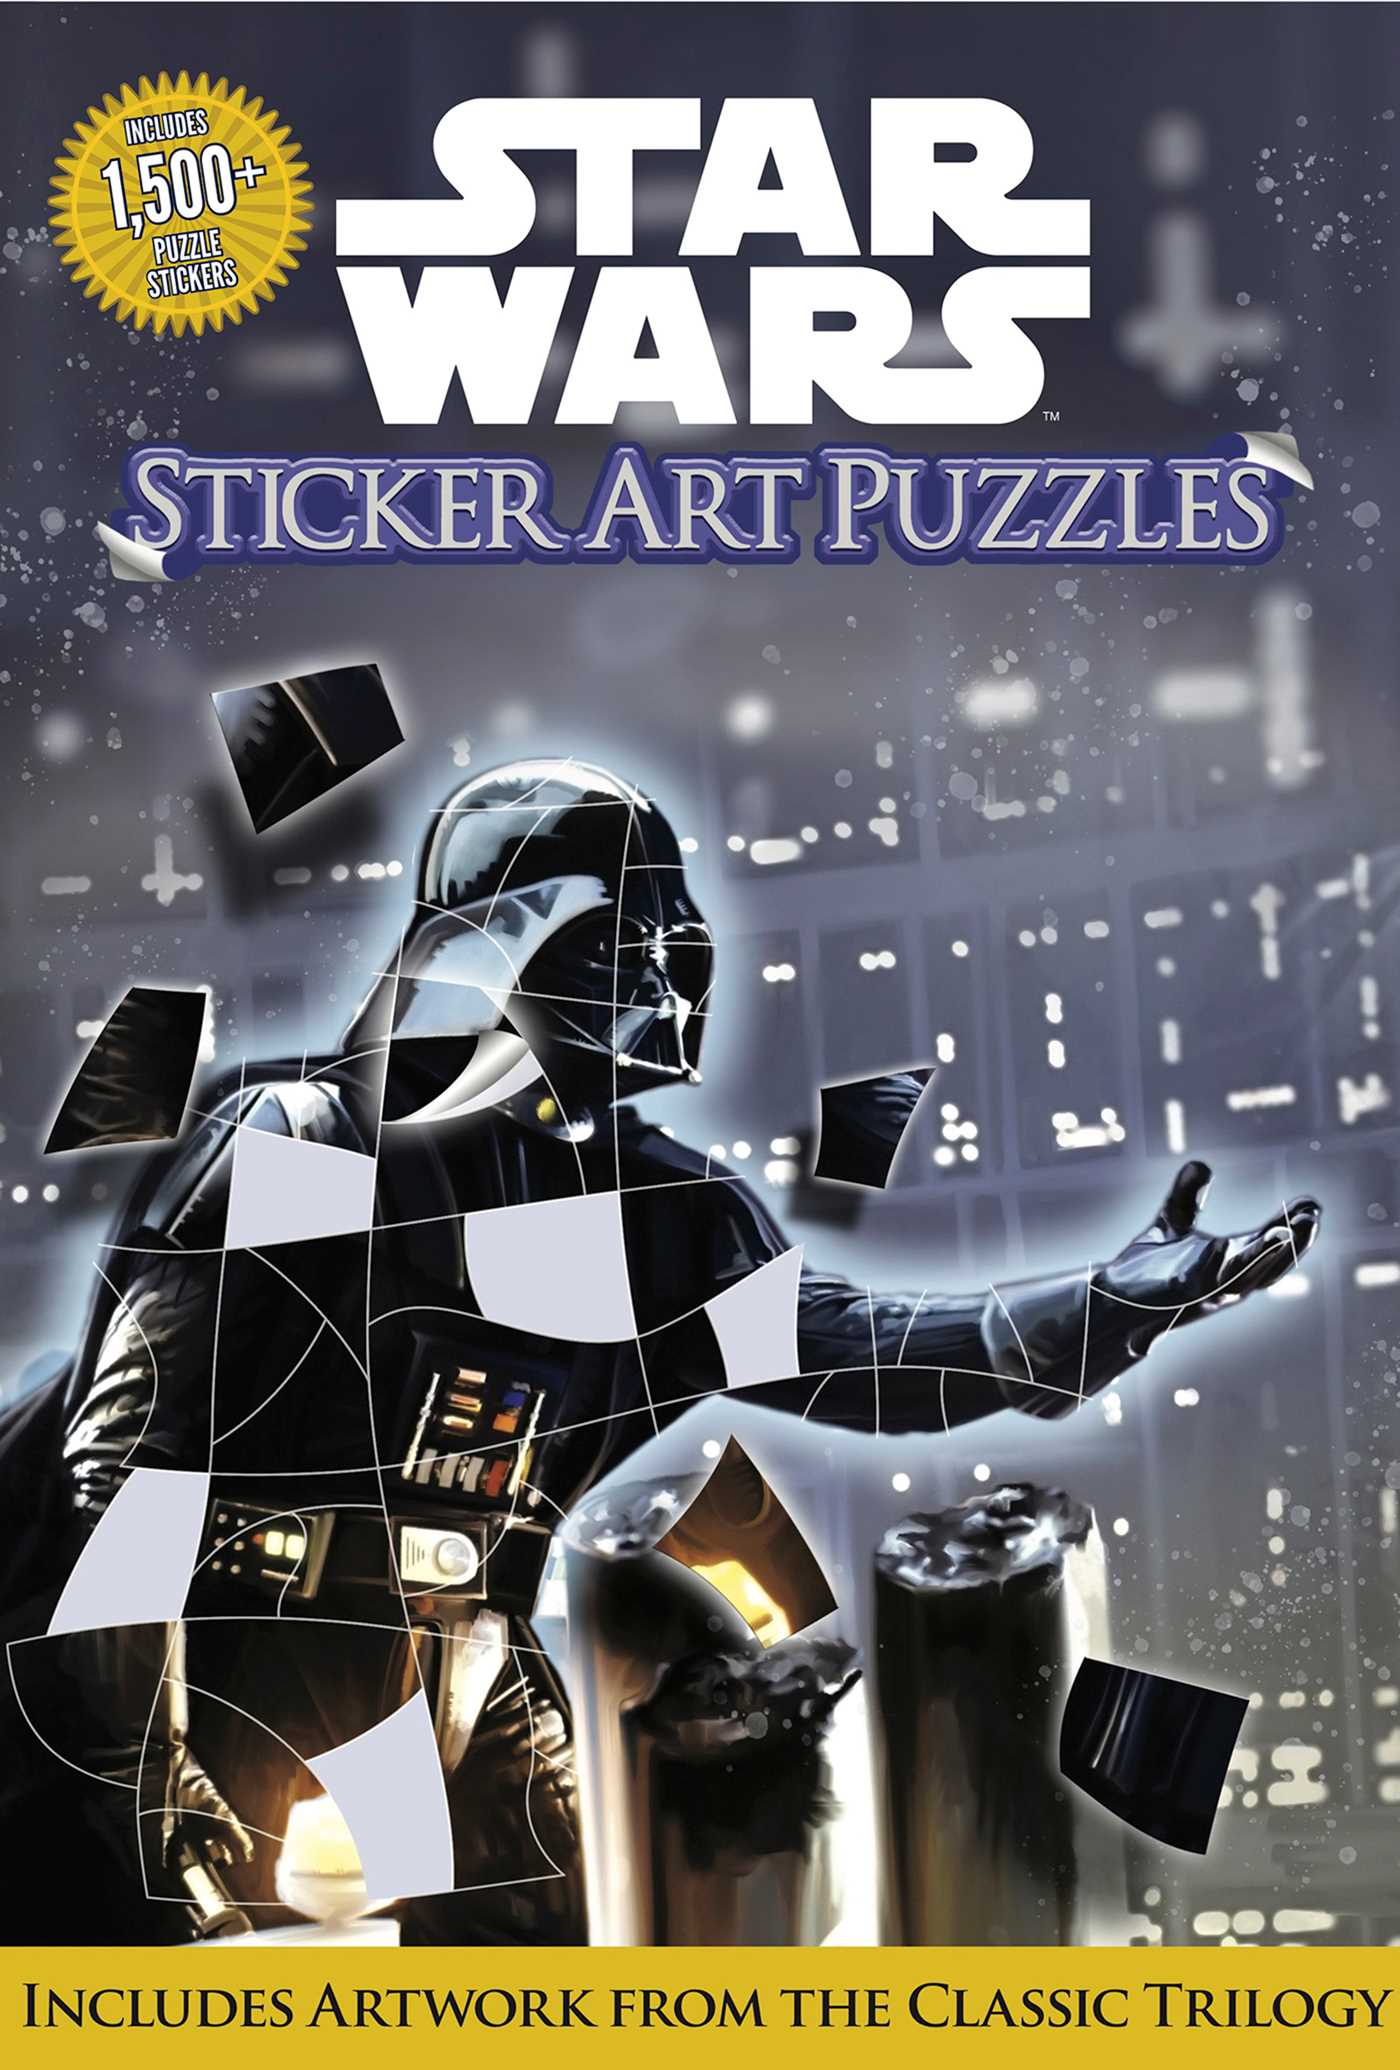 Star Wars Sticker Art Puzzles (04.10.2019)